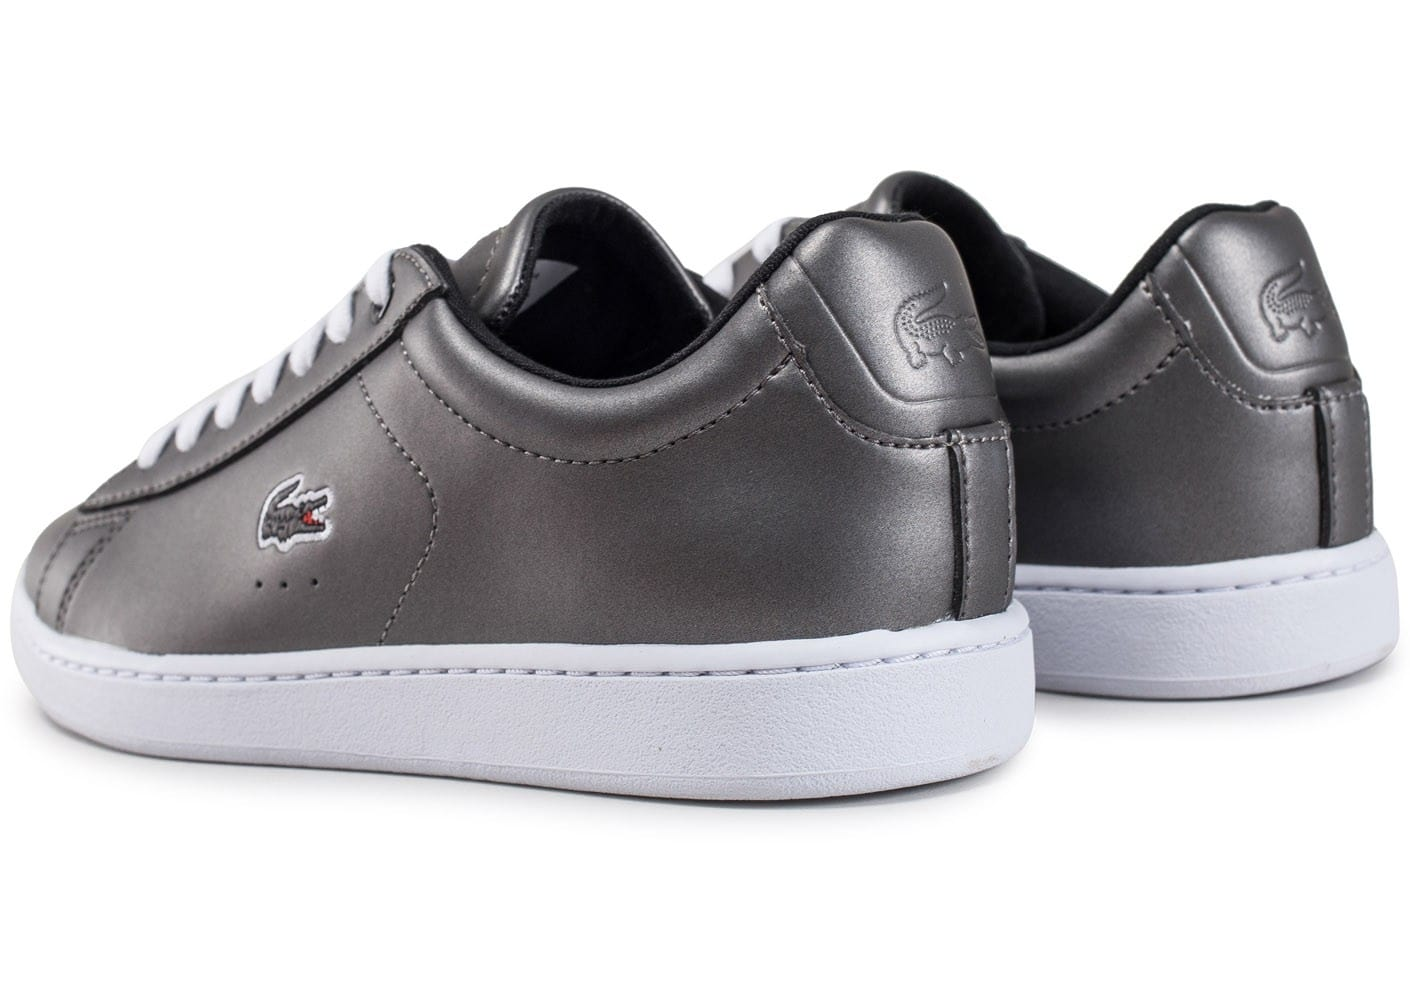 Lacoste carnaby evo w grise chaussures black friday - Lacoste carnaby evo cls baskets en cuir perfore ...